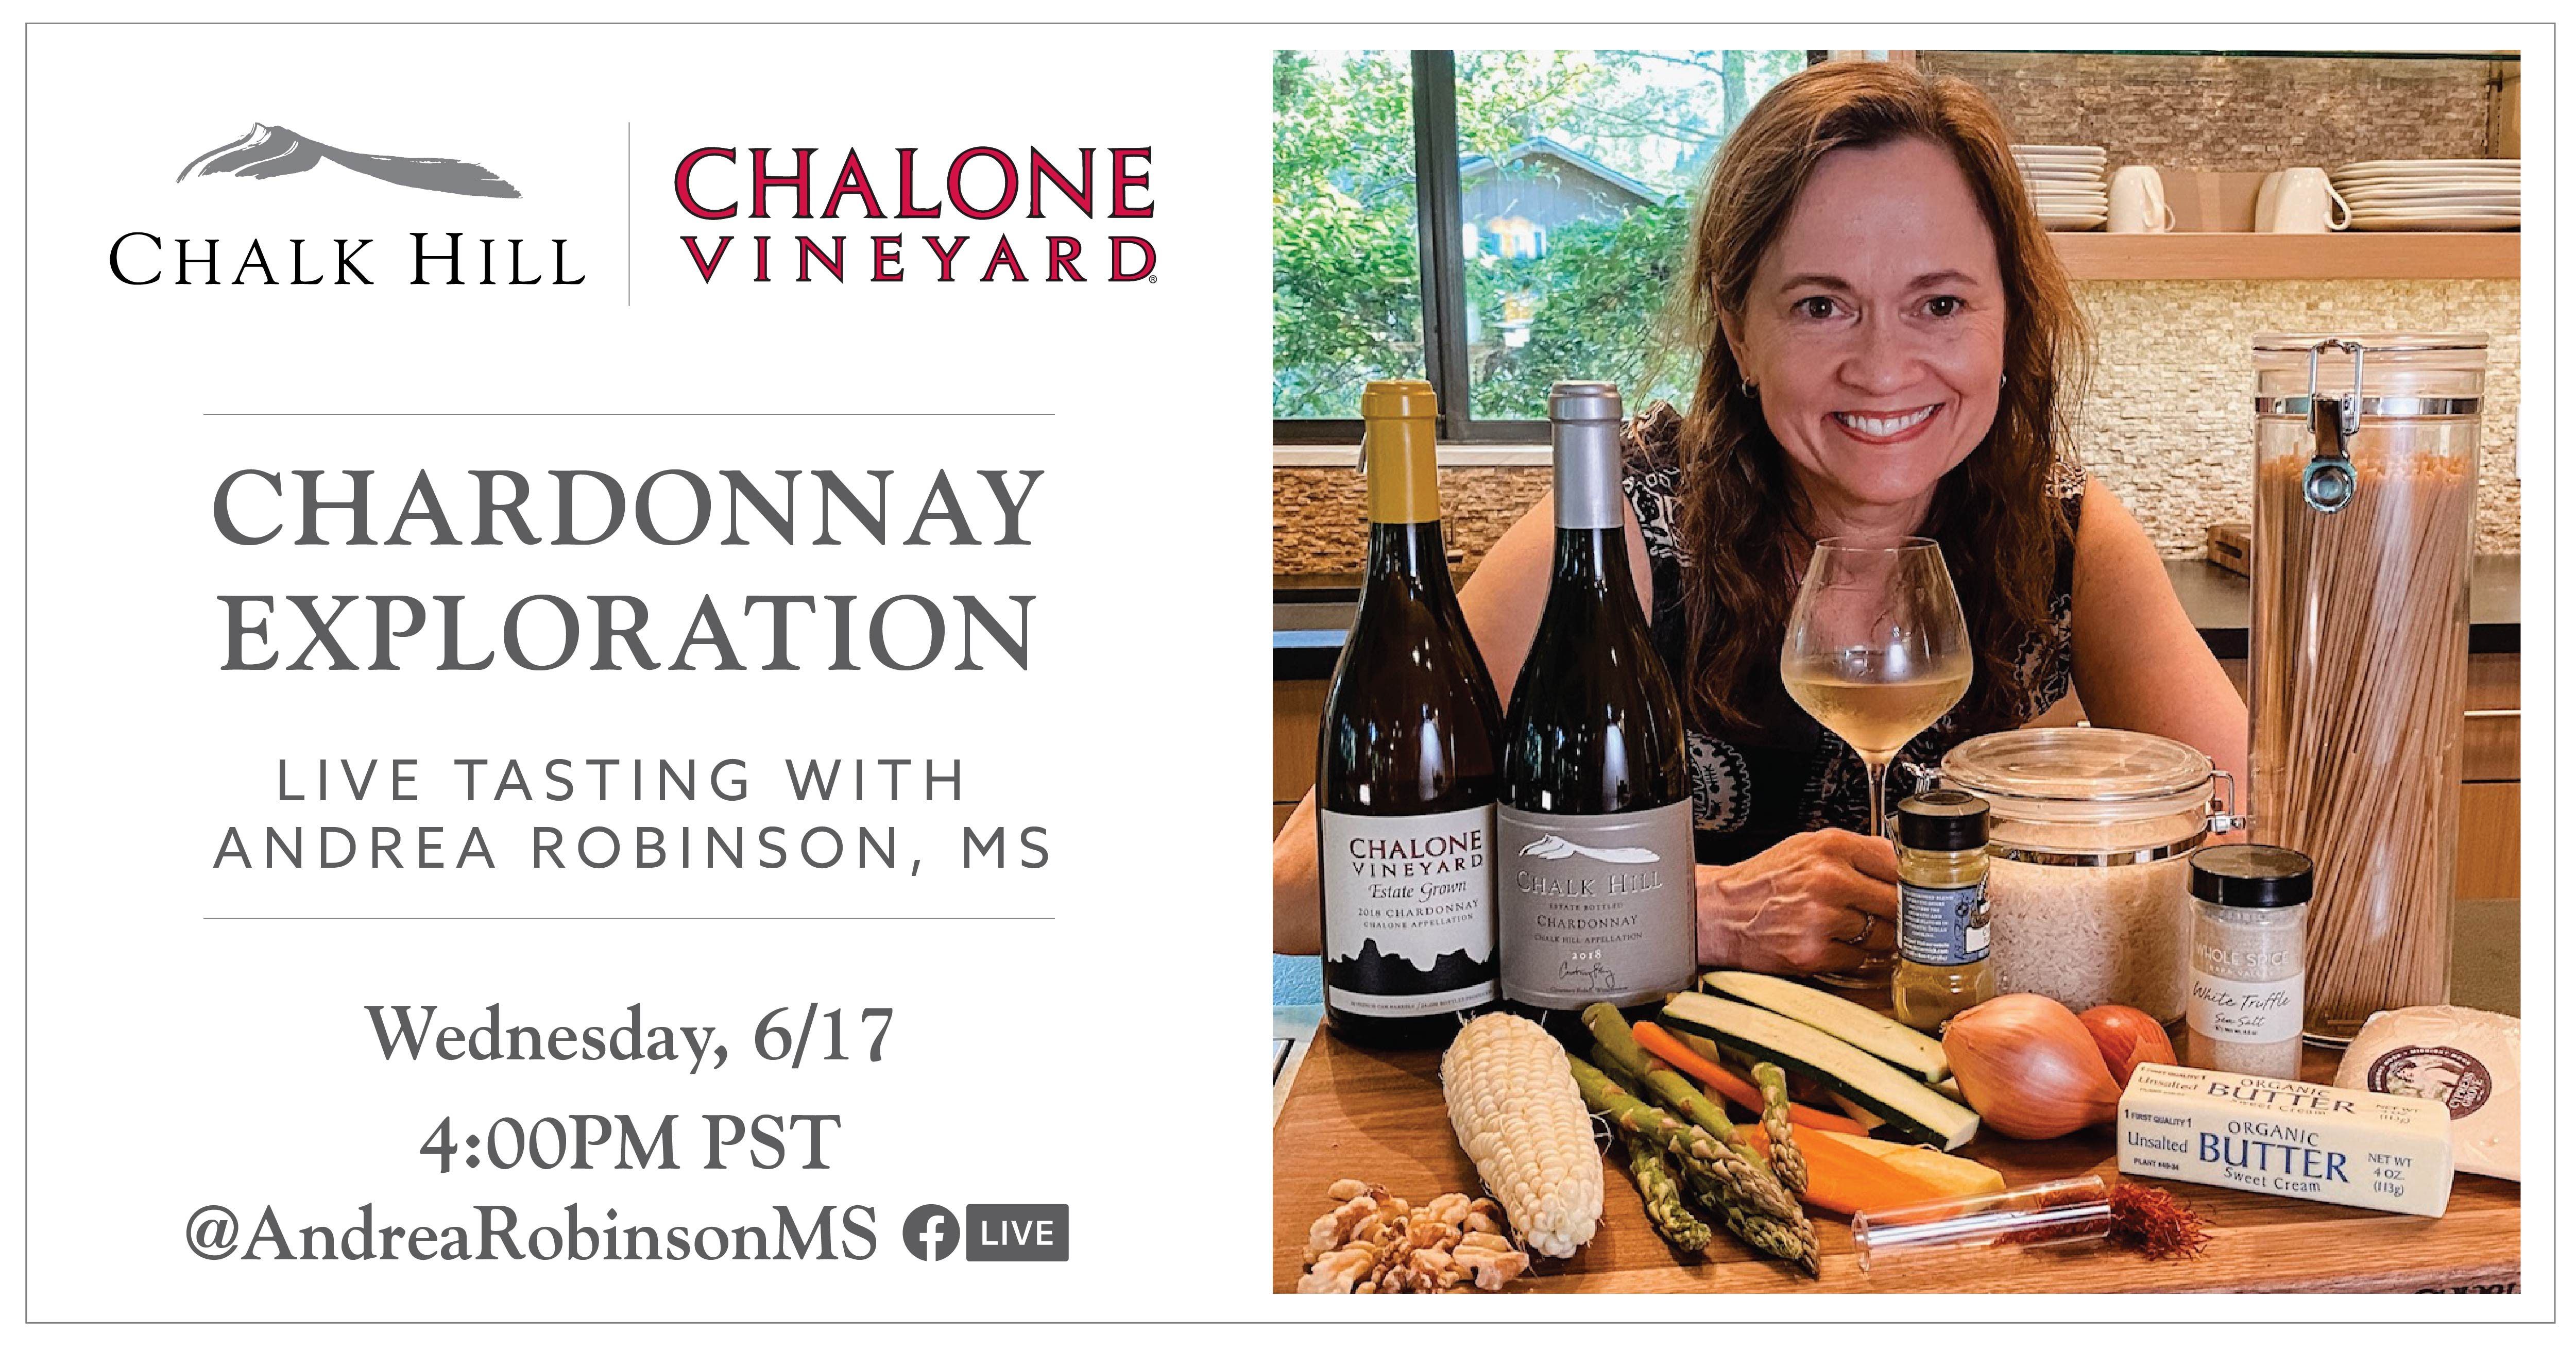 Chalk Hill Live Tasting with Courtney Foley & Andrea Robinson